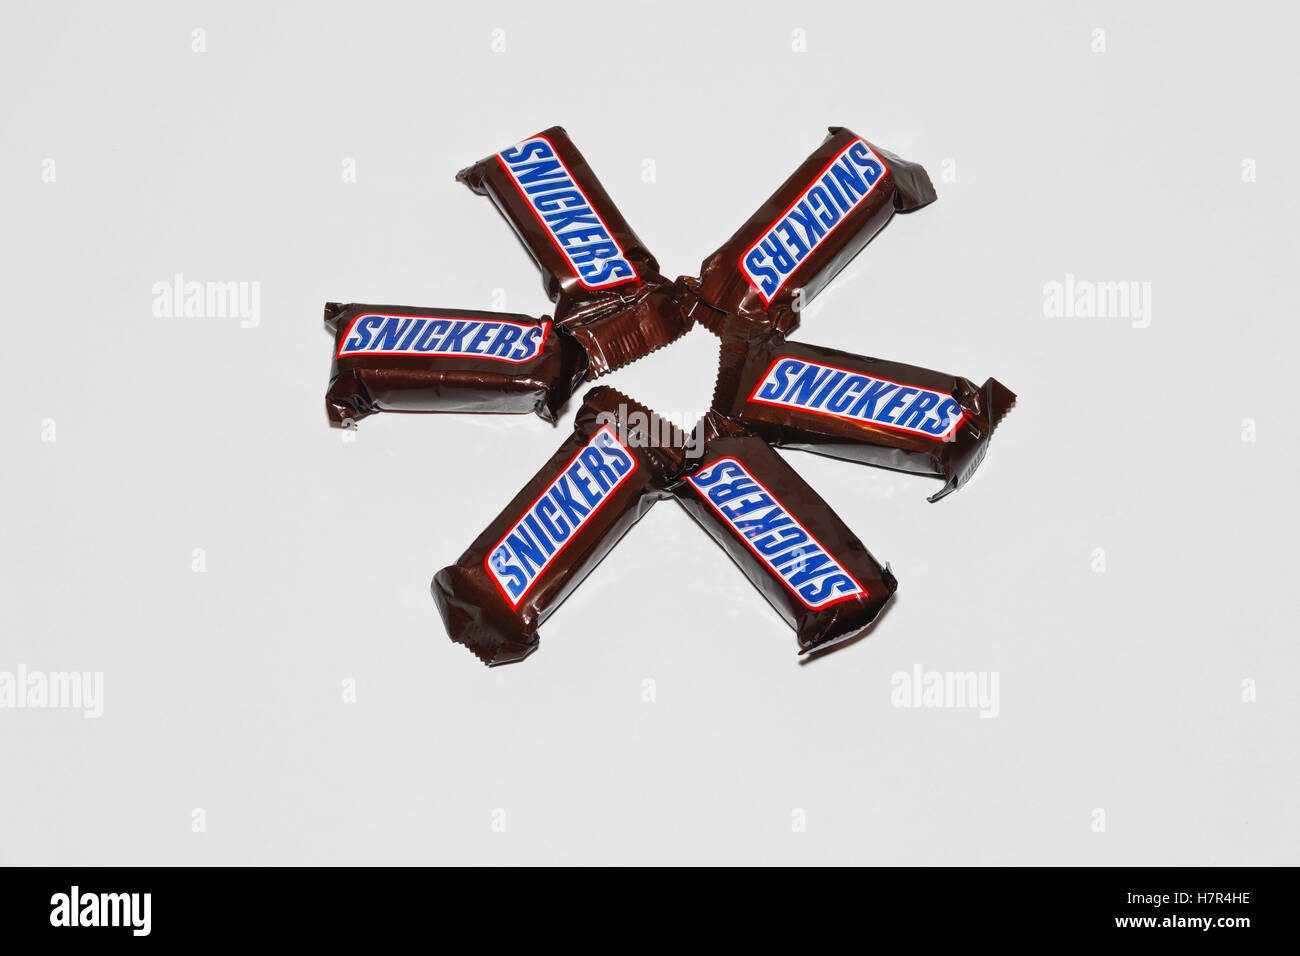 Six mini Snickers chocolate bars isolated on white background. - Stock Image